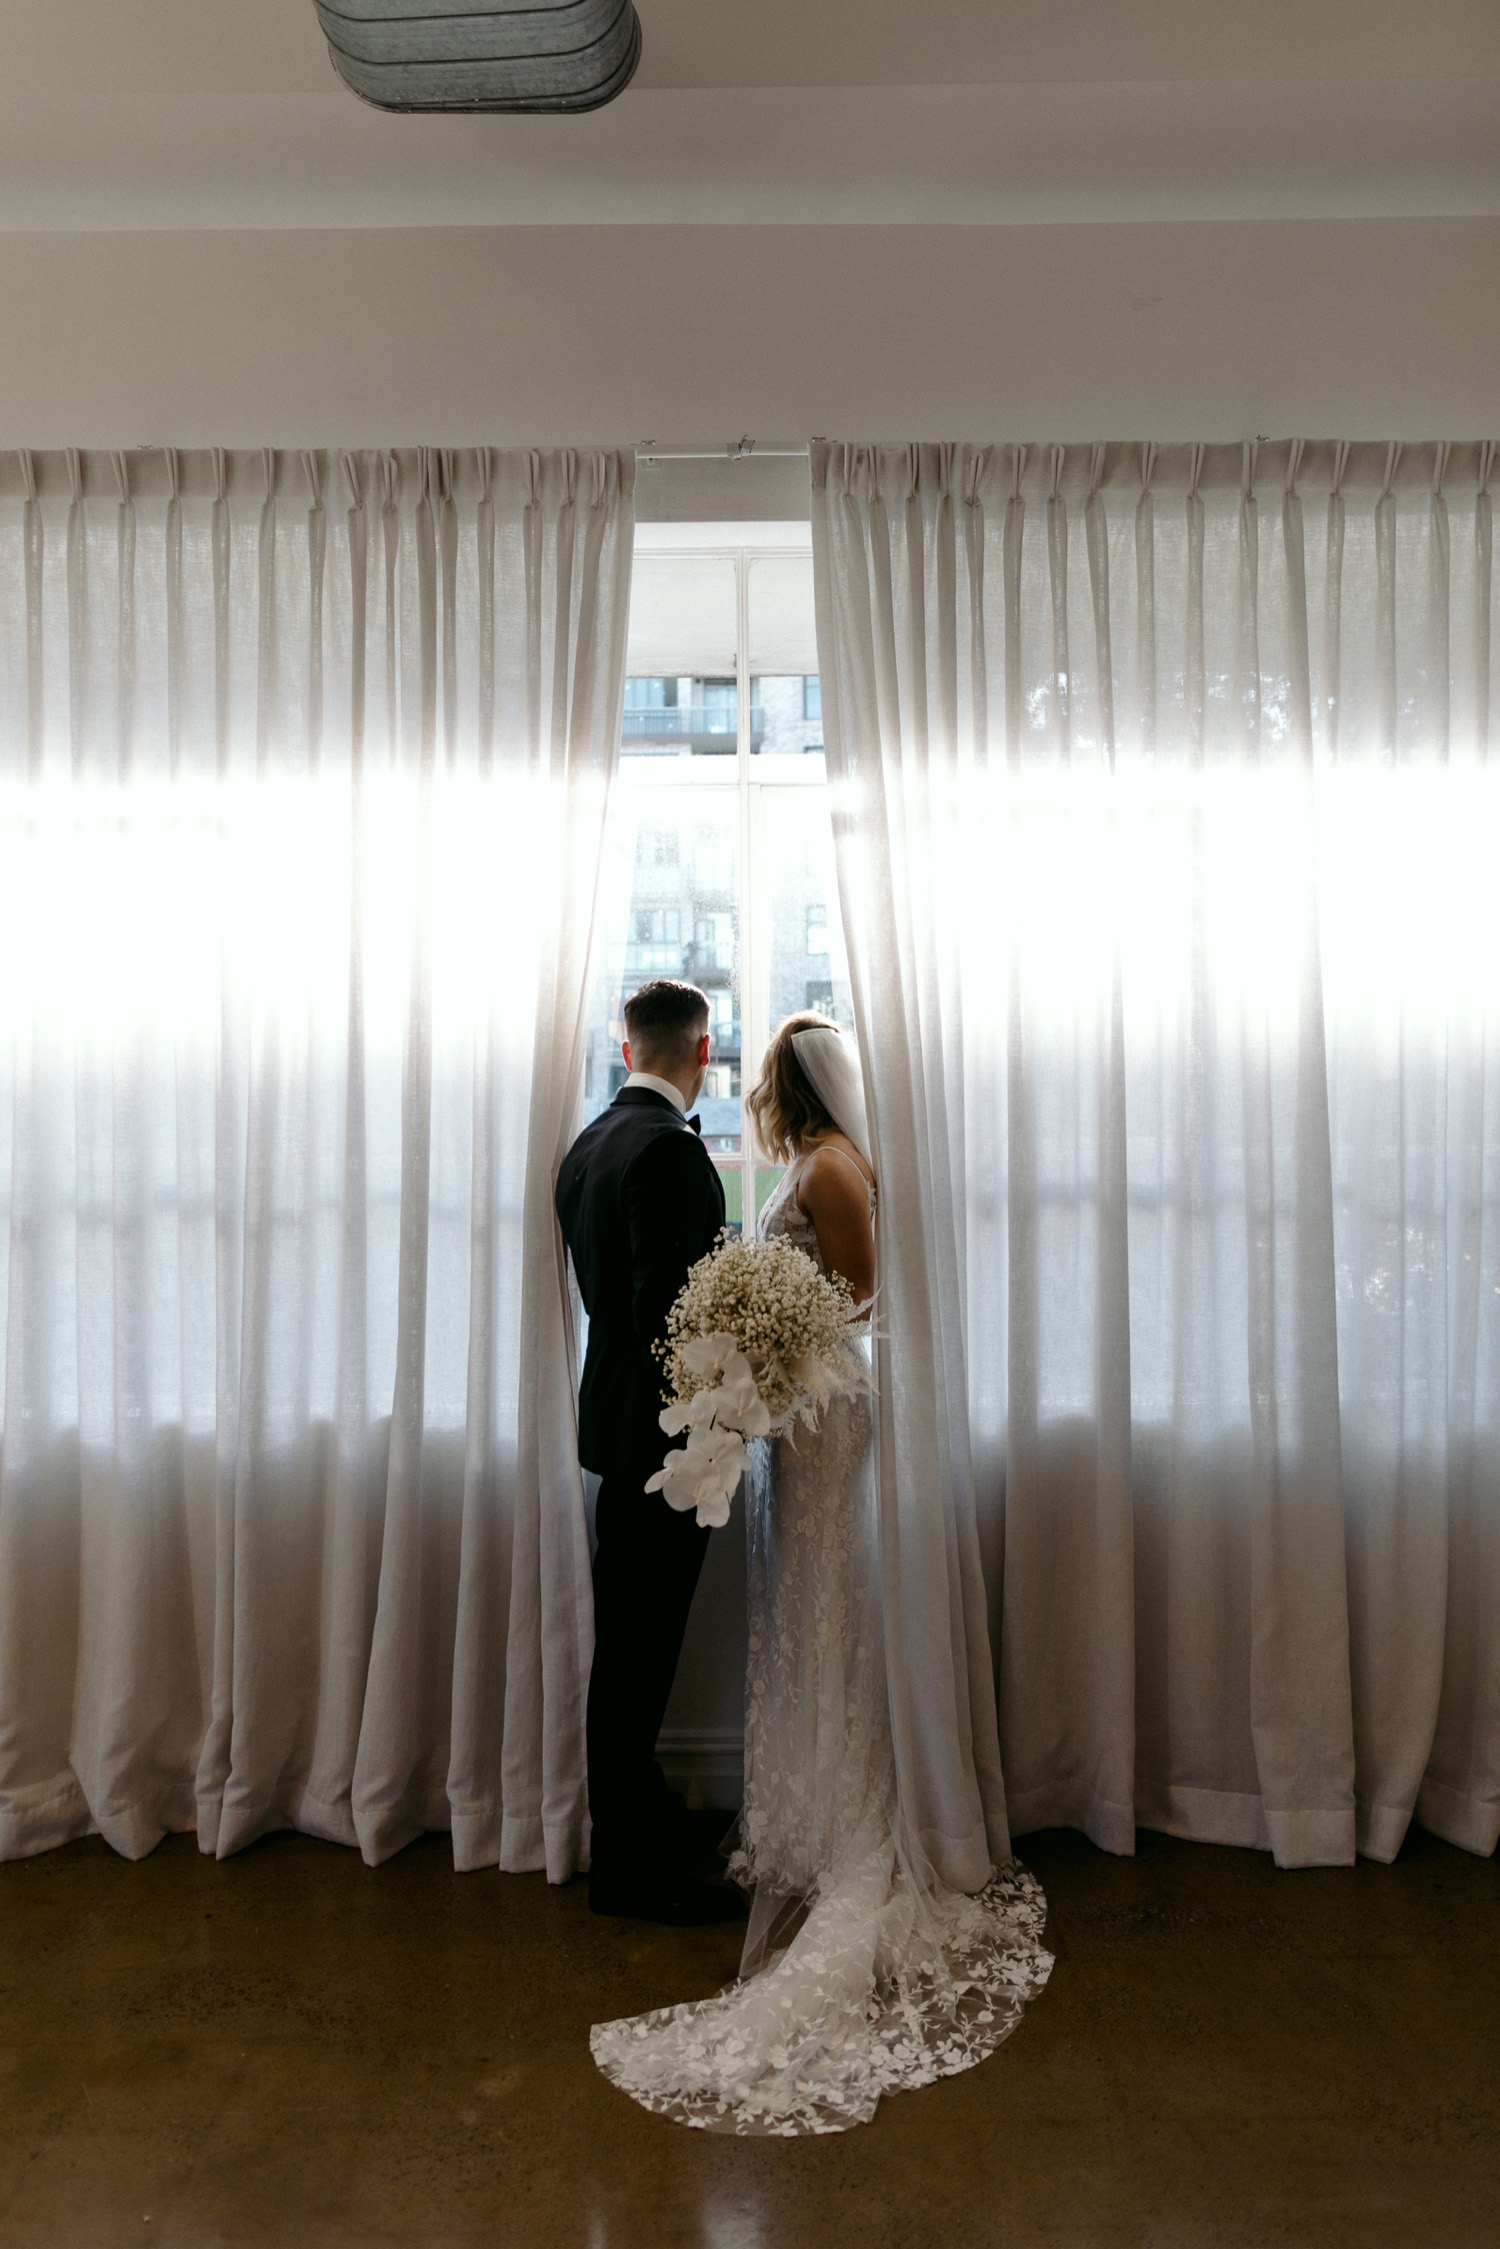 bride and groom looking out of la porte space window at guests below